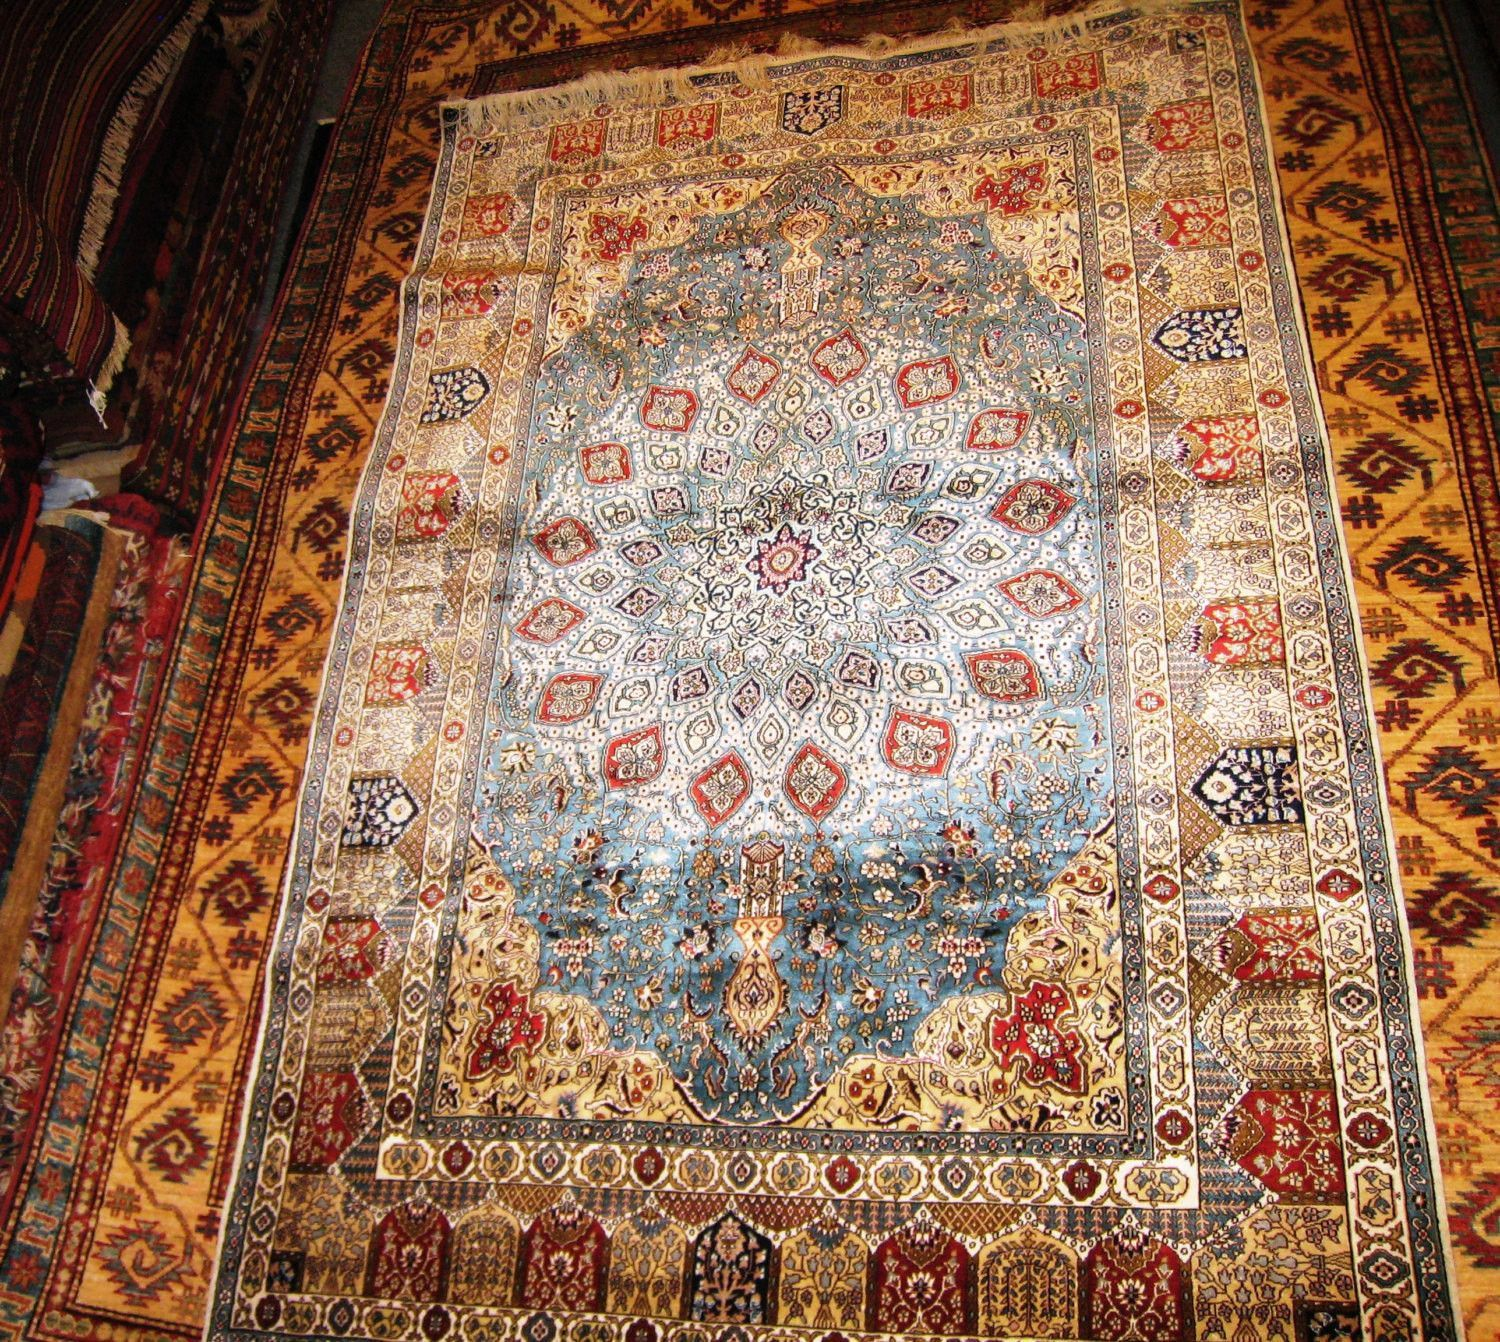 PERSIAN CARPET BEAUTIFUL iran iranian rug persia qom 4x6 ...